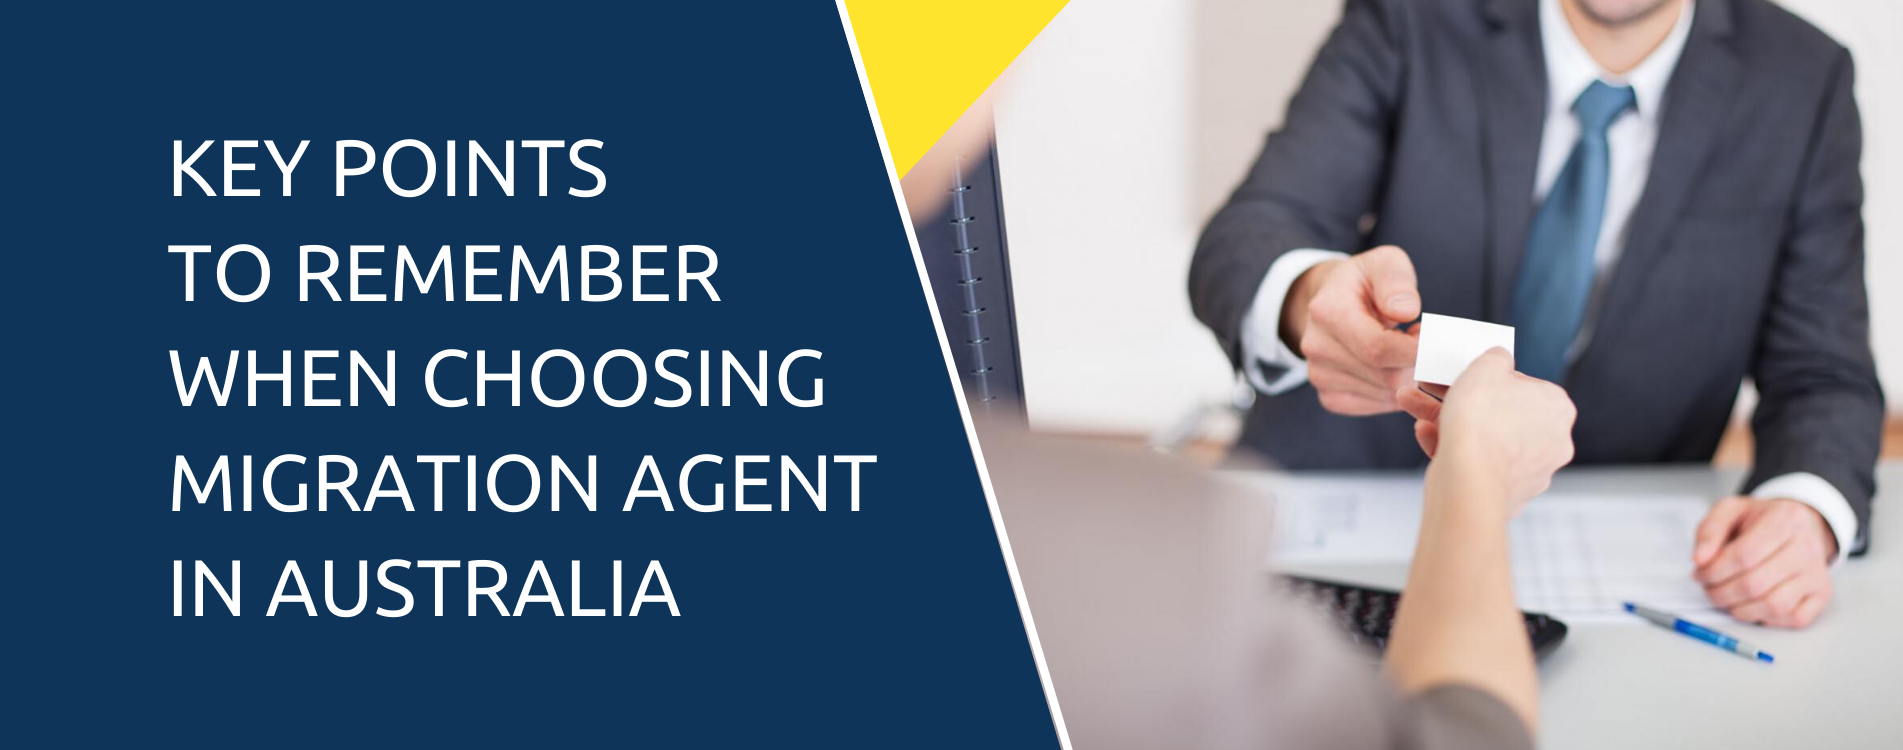 Key Points to Remember When Choosing Migration Agent in Australia